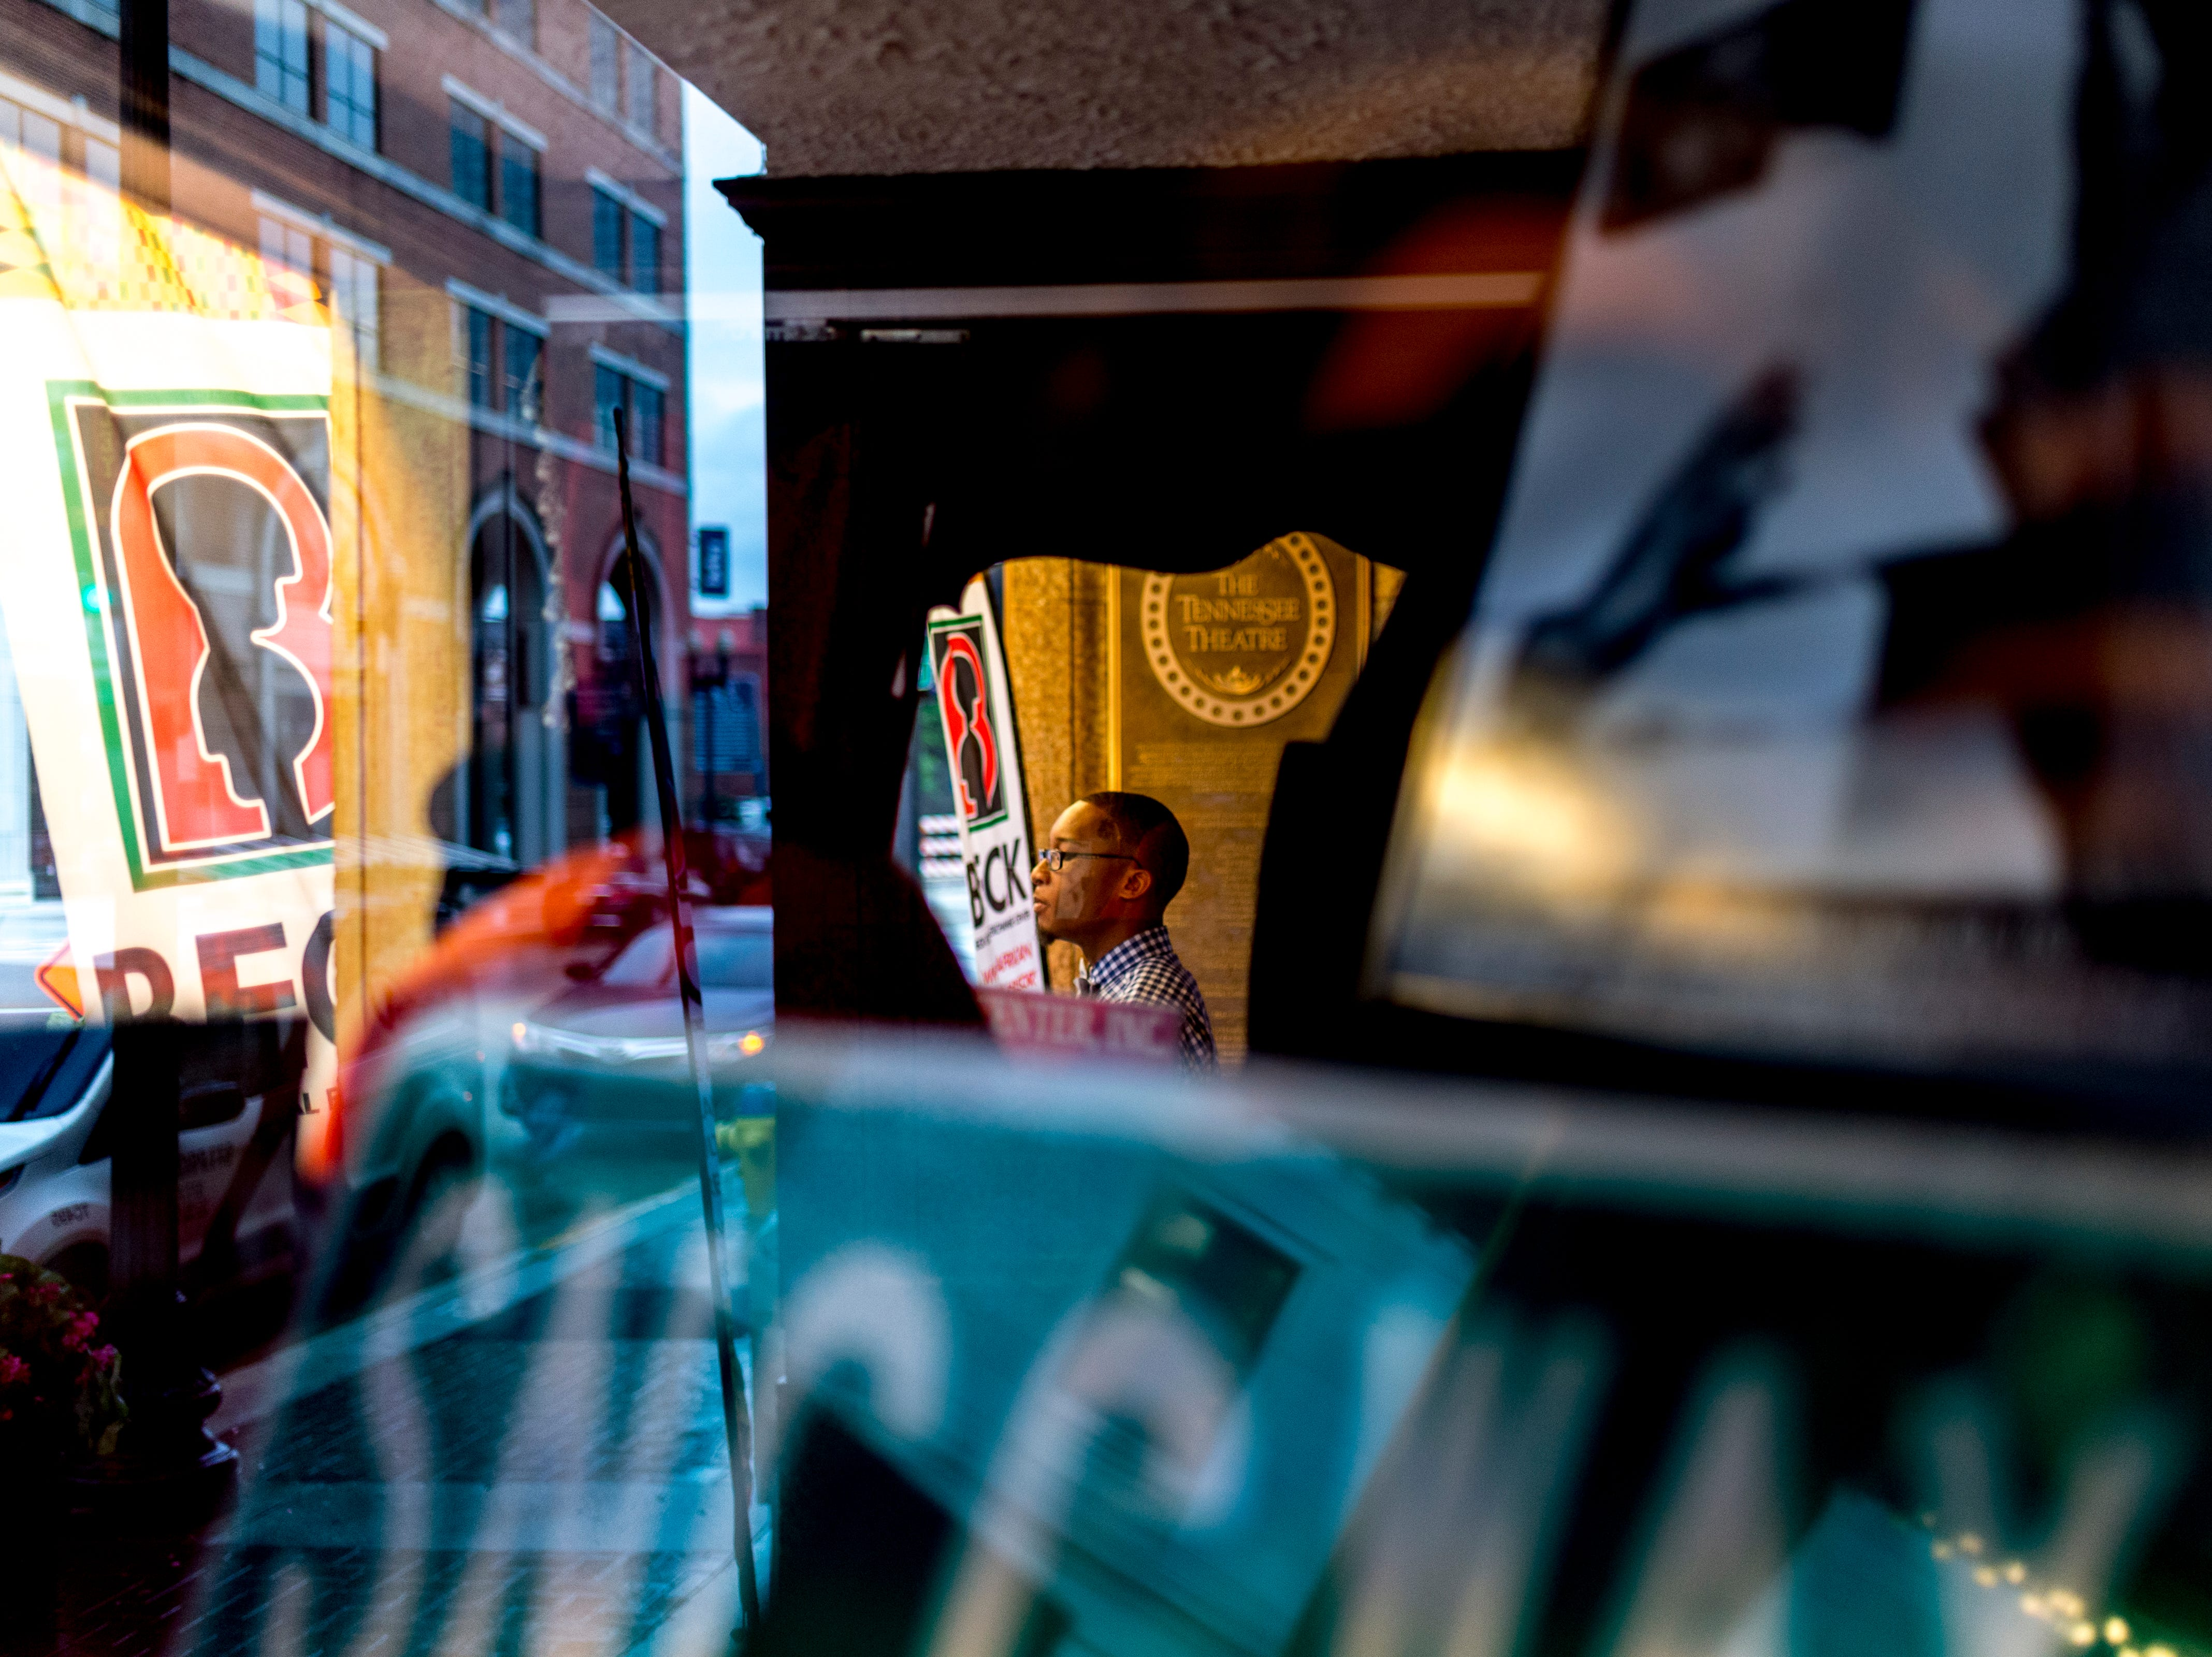 """An attendee waits outside at the Beck Cultural Center's """"Eighth of August"""" commemoration at the Tennessee Theatre in Knoxville, Tennessee on Wednesday, August 8, 2018. Filmmaker Loki Mulholland and civil rights icon Joan Trumpauer Mulholland were special guests at the debut screening of Black, White & U.S."""